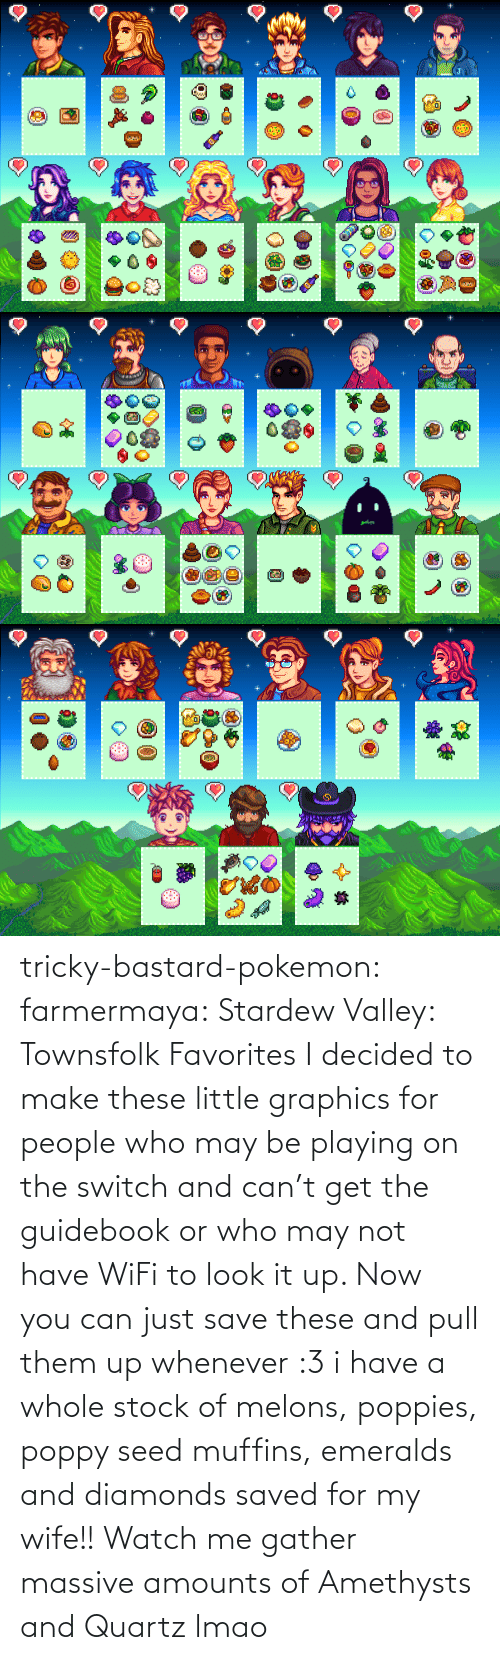 Pokemon: tricky-bastard-pokemon:  farmermaya: Stardew Valley: Townsfolk Favorites  I decided to make these little graphics for people who may be playing on the switch and can't get the guidebook or who may not have WiFi to look it up. Now you can just save these and pull them up whenever :3   i have a whole stock of melons, poppies, poppy seed muffins, emeralds and diamonds saved for my wife!!    Watch me gather massive amounts of Amethysts and Quartz lmao